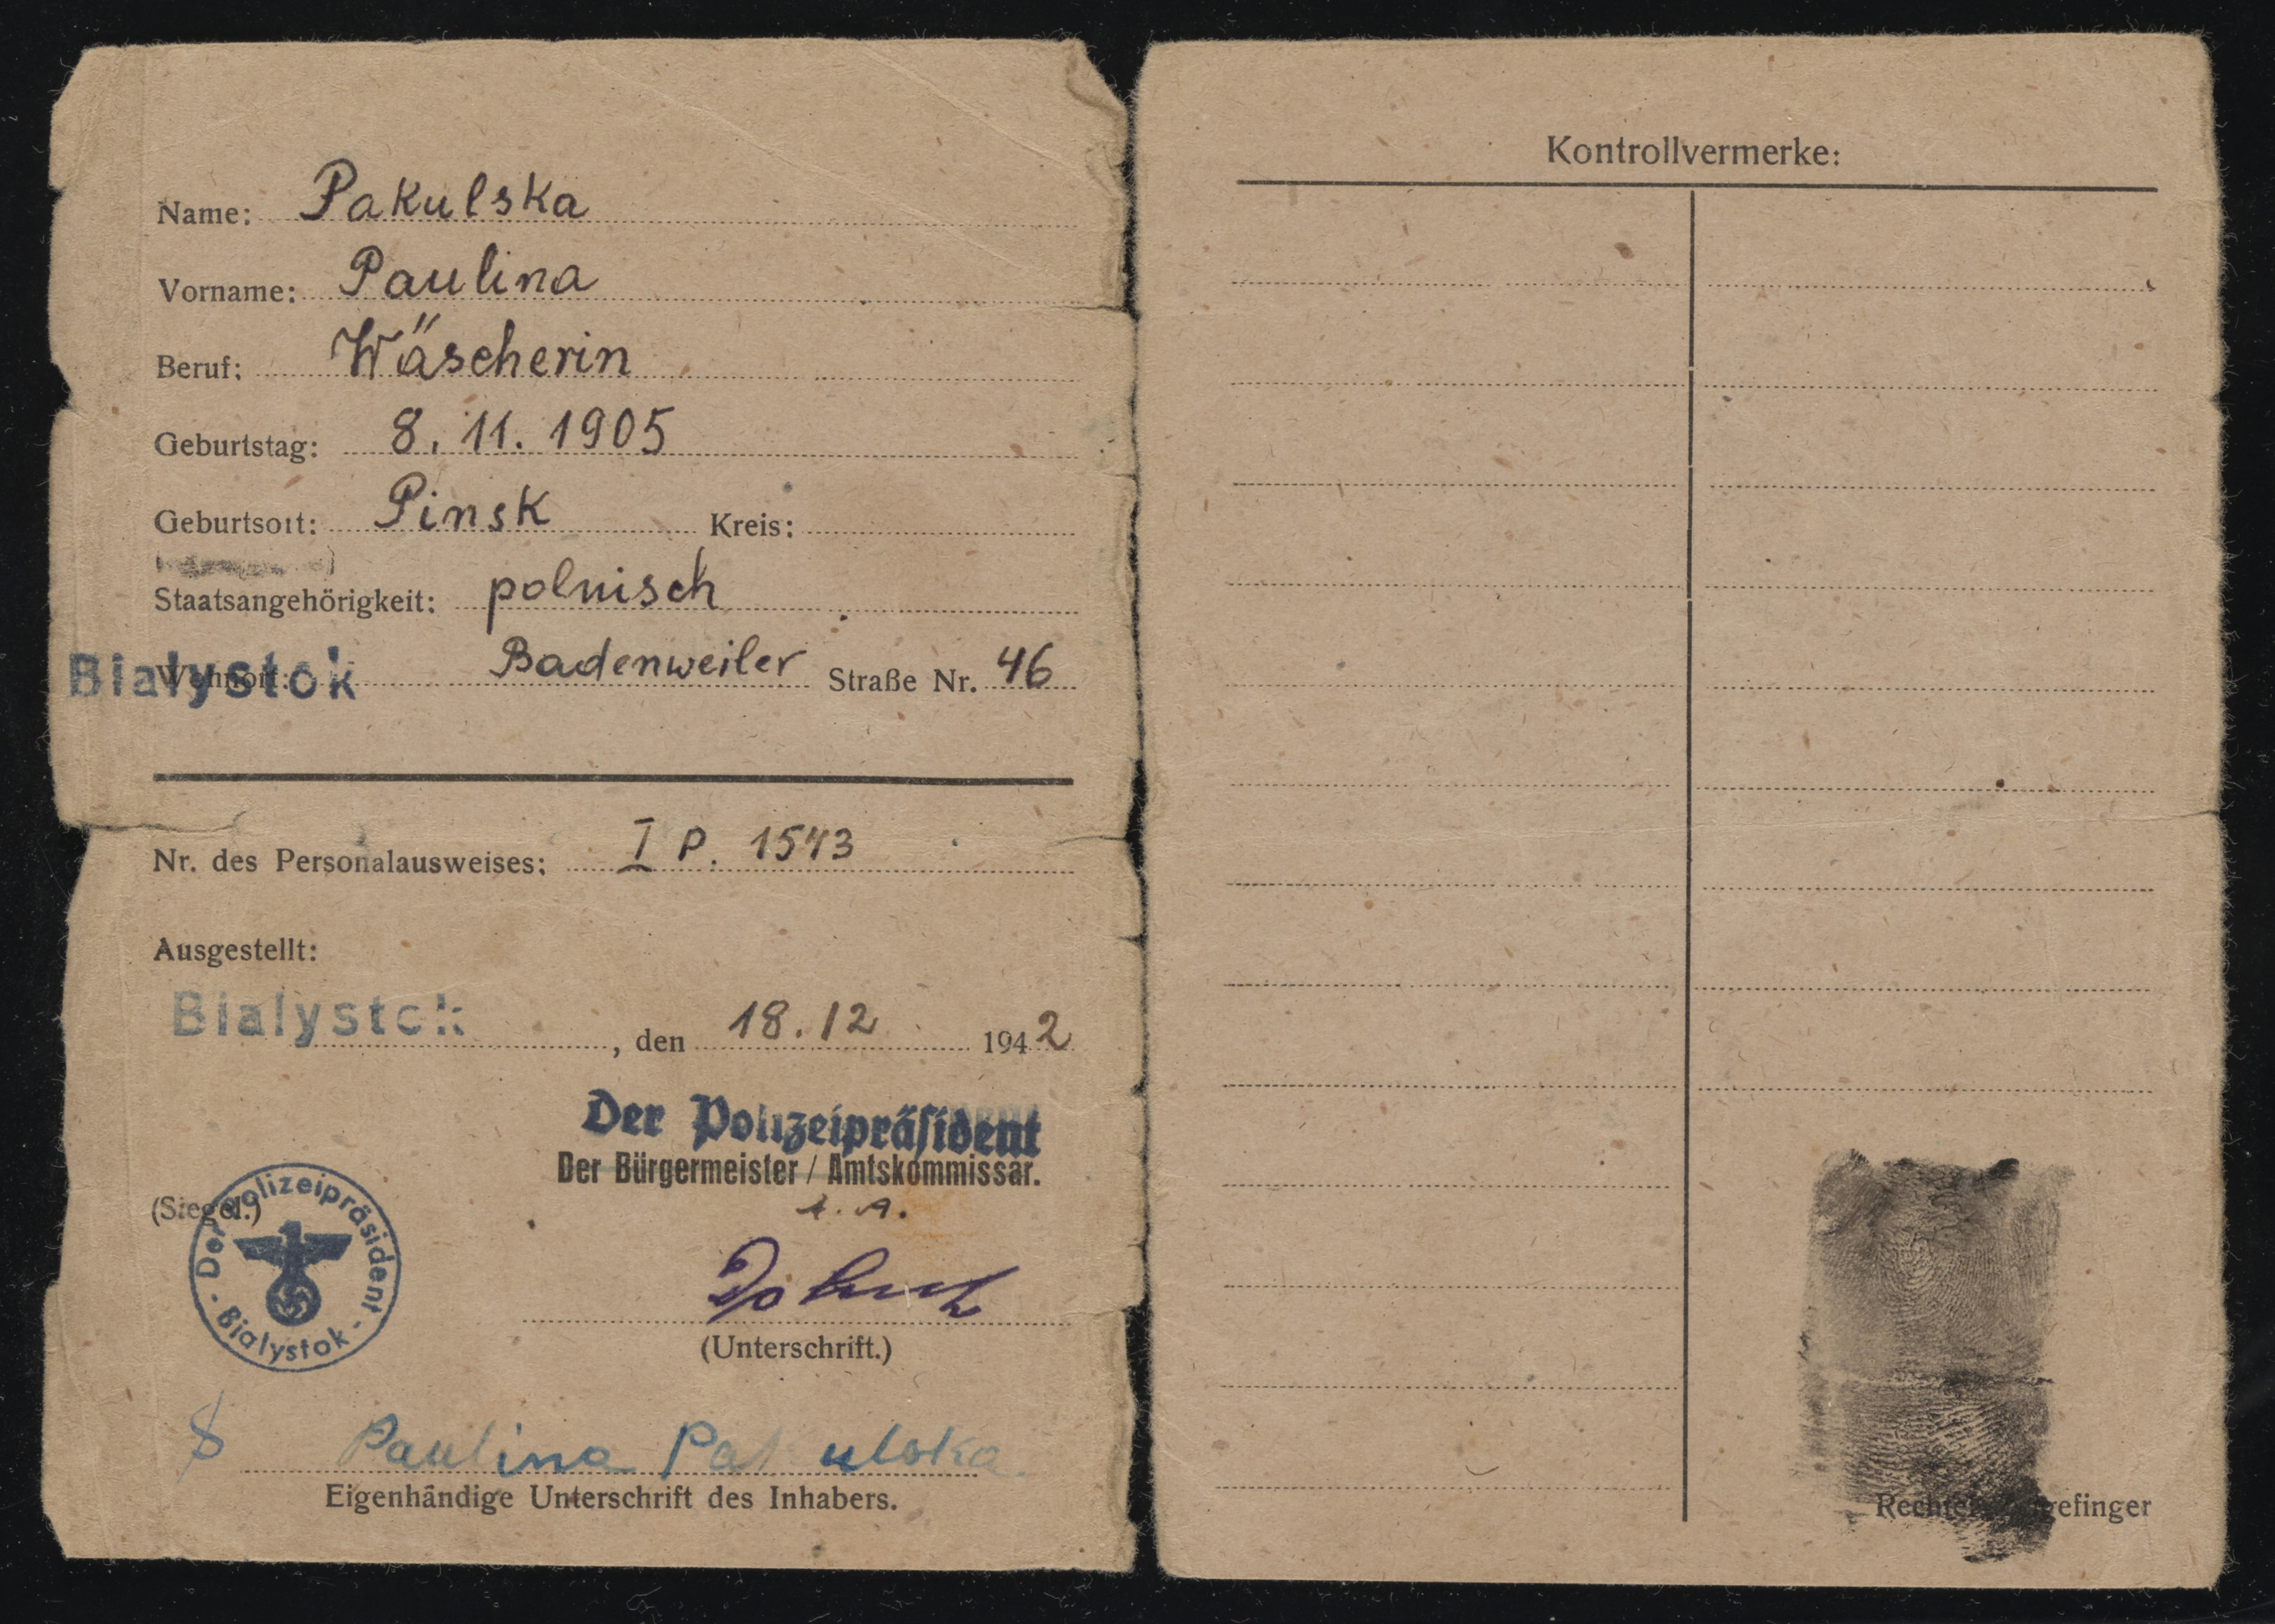 Work permit issued to Bela Rozenszajn, who was living in hiding under the name of Paulina Pakulska.  In the document she is identified as a laundress, born on November 11, 1905 in Pinsk.